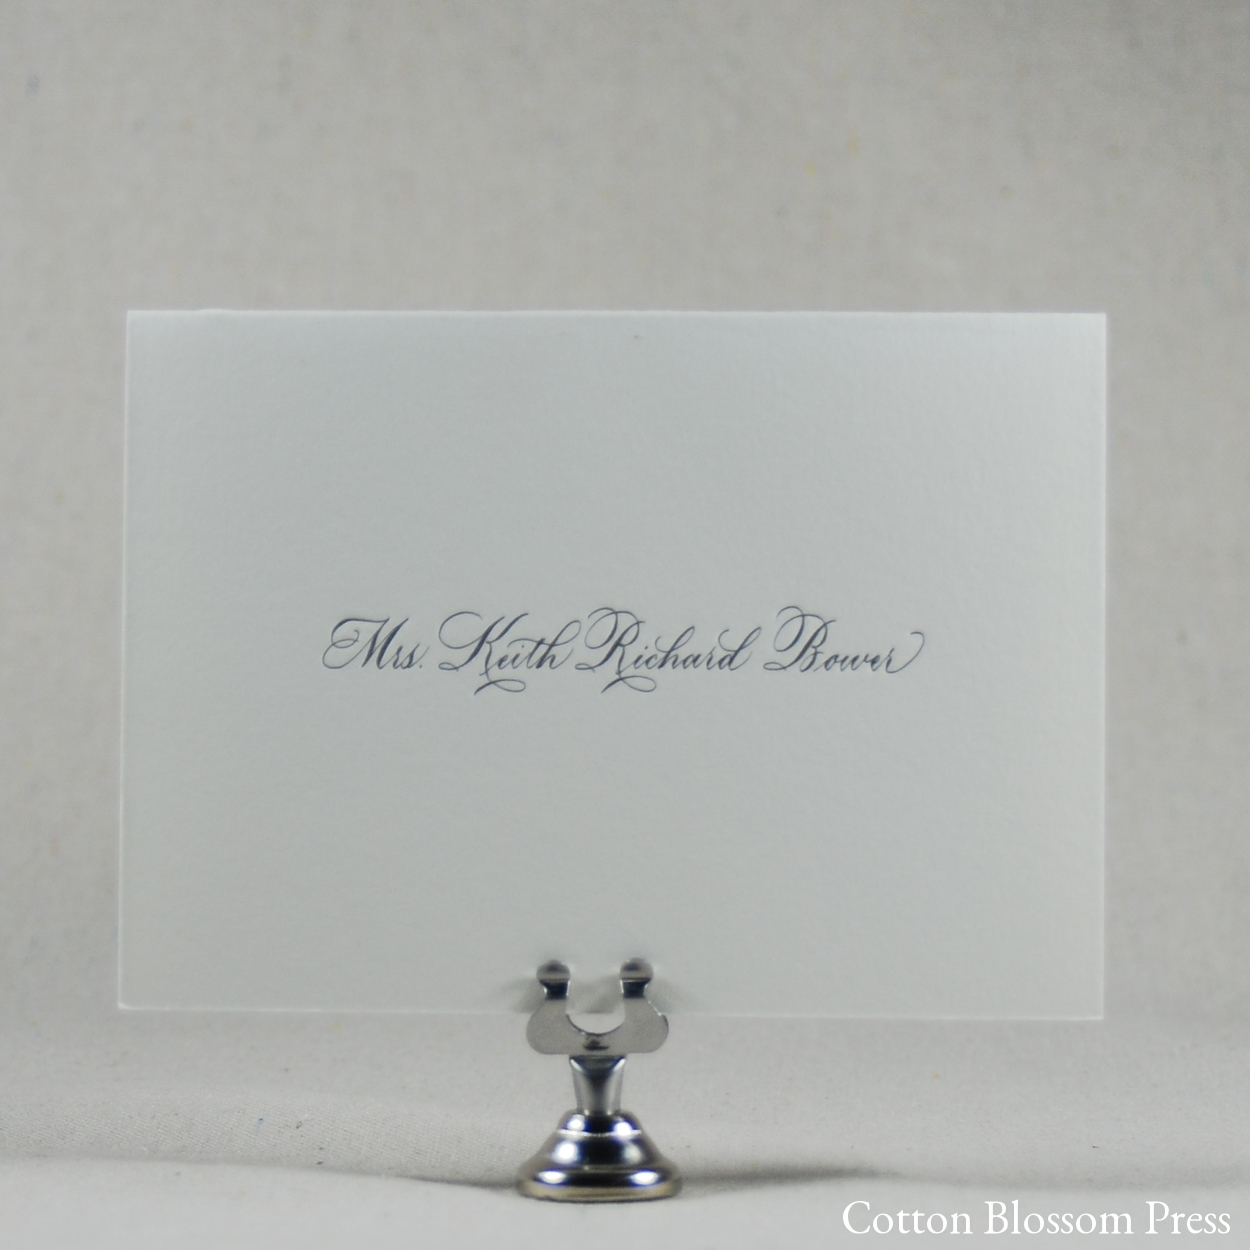 CBP-Wedding_Darby_FormalStationery2.JPG